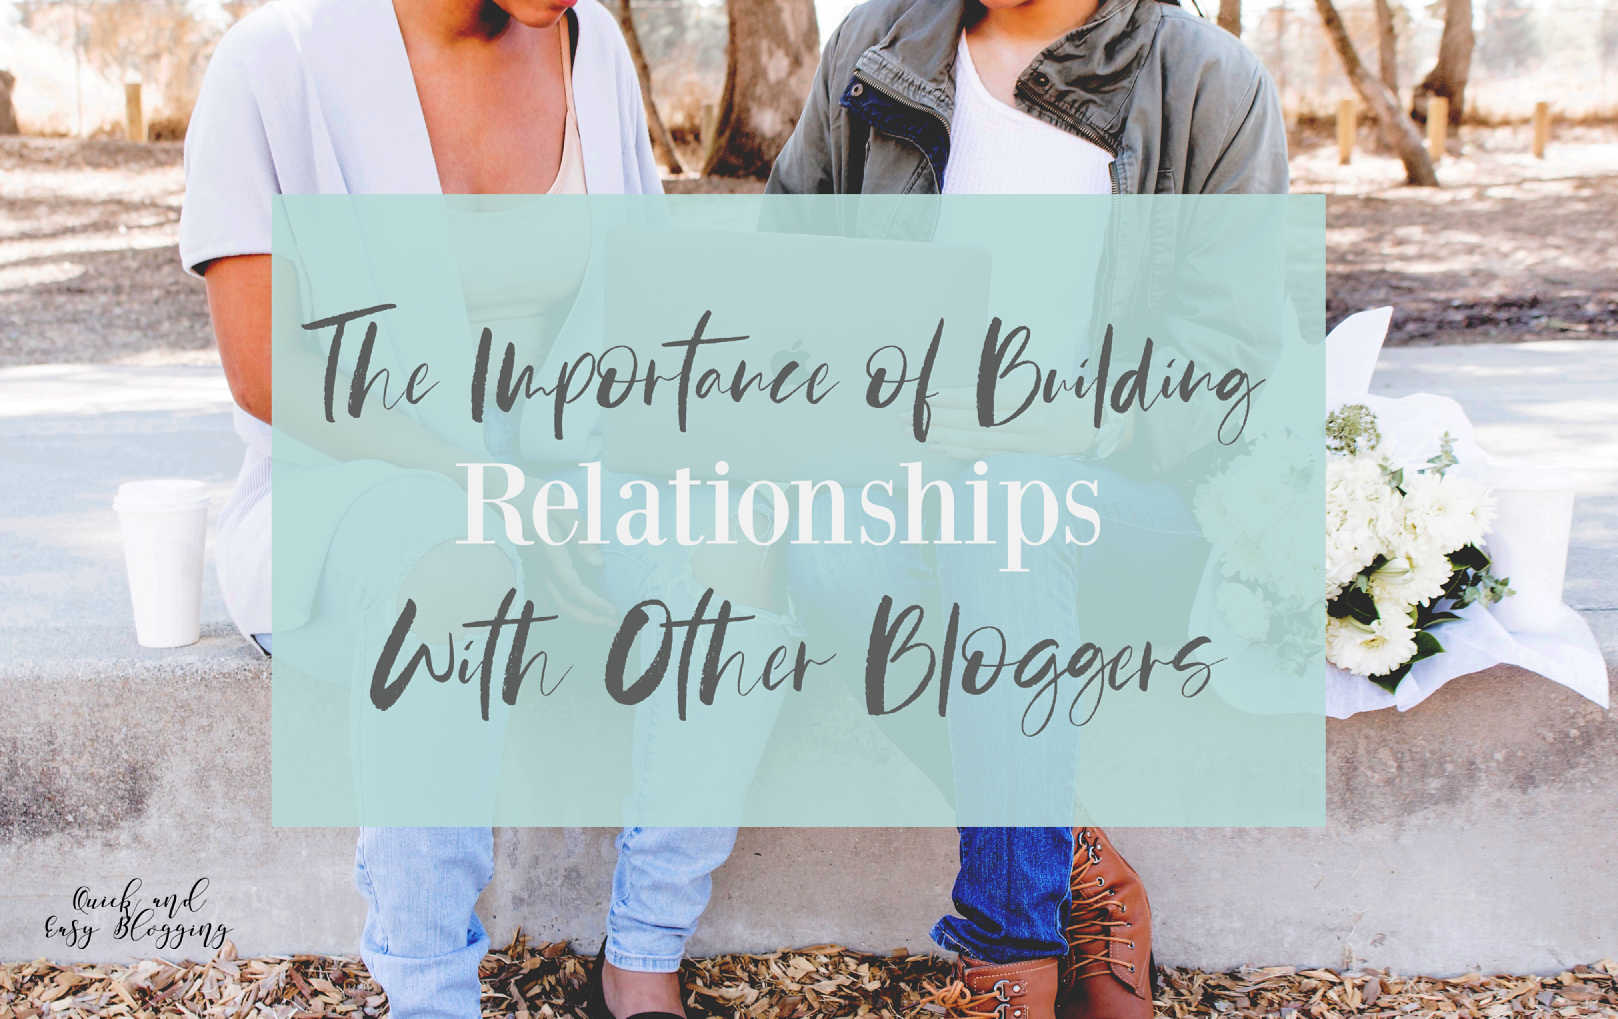 The Importance of Building Relationships With Other Bloggers